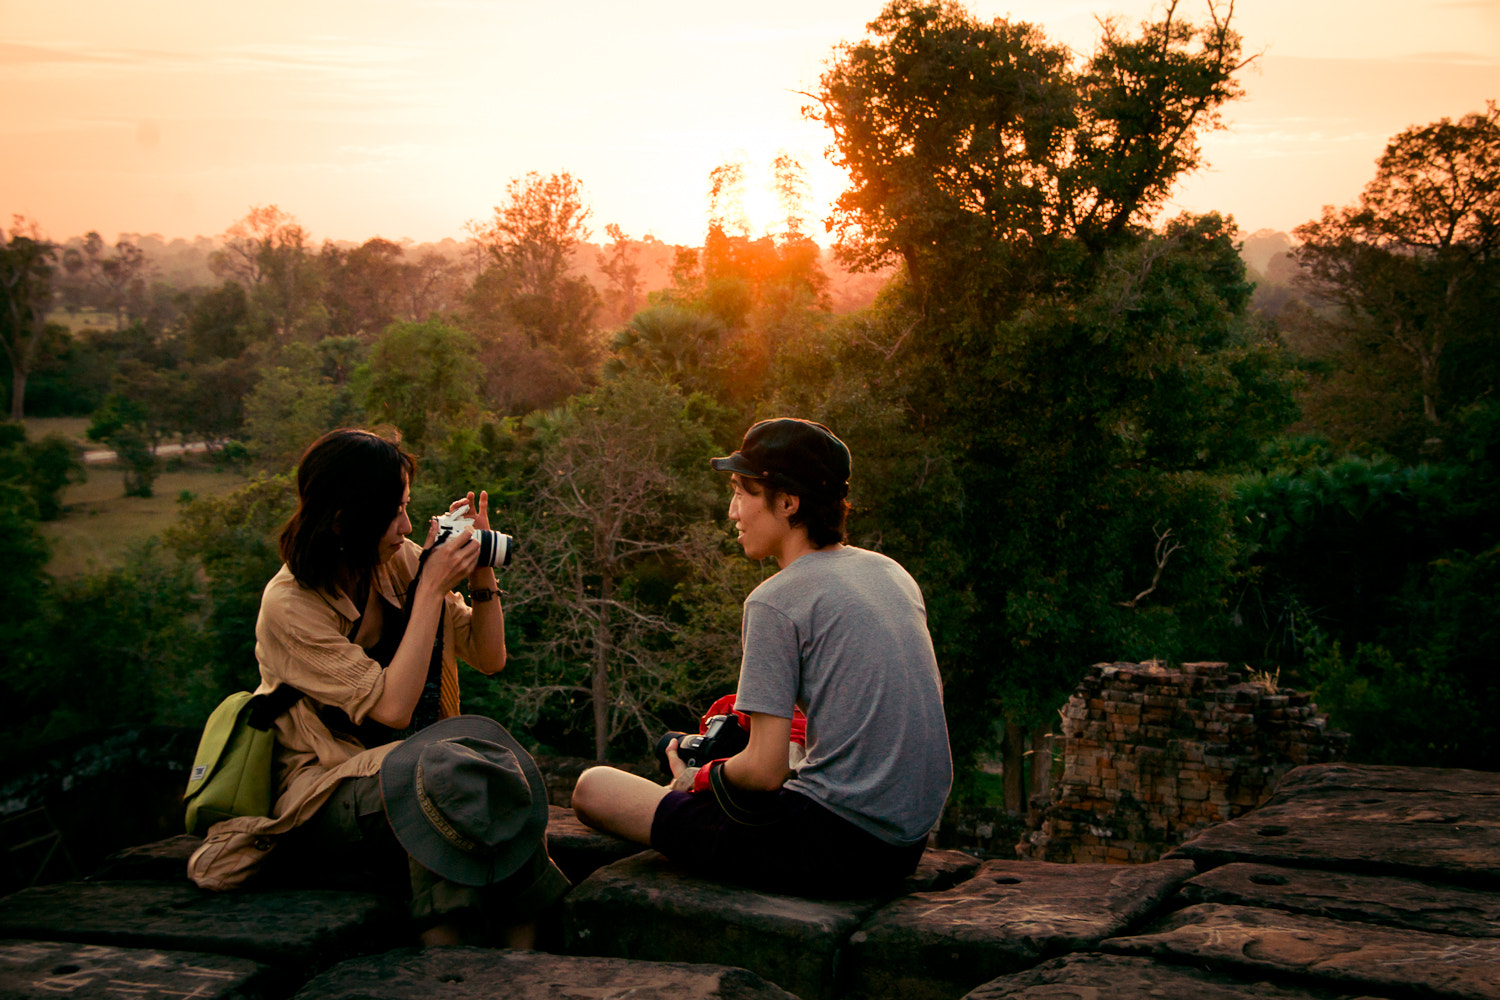 Photograph Cambodia II by Minh Tran on 500px